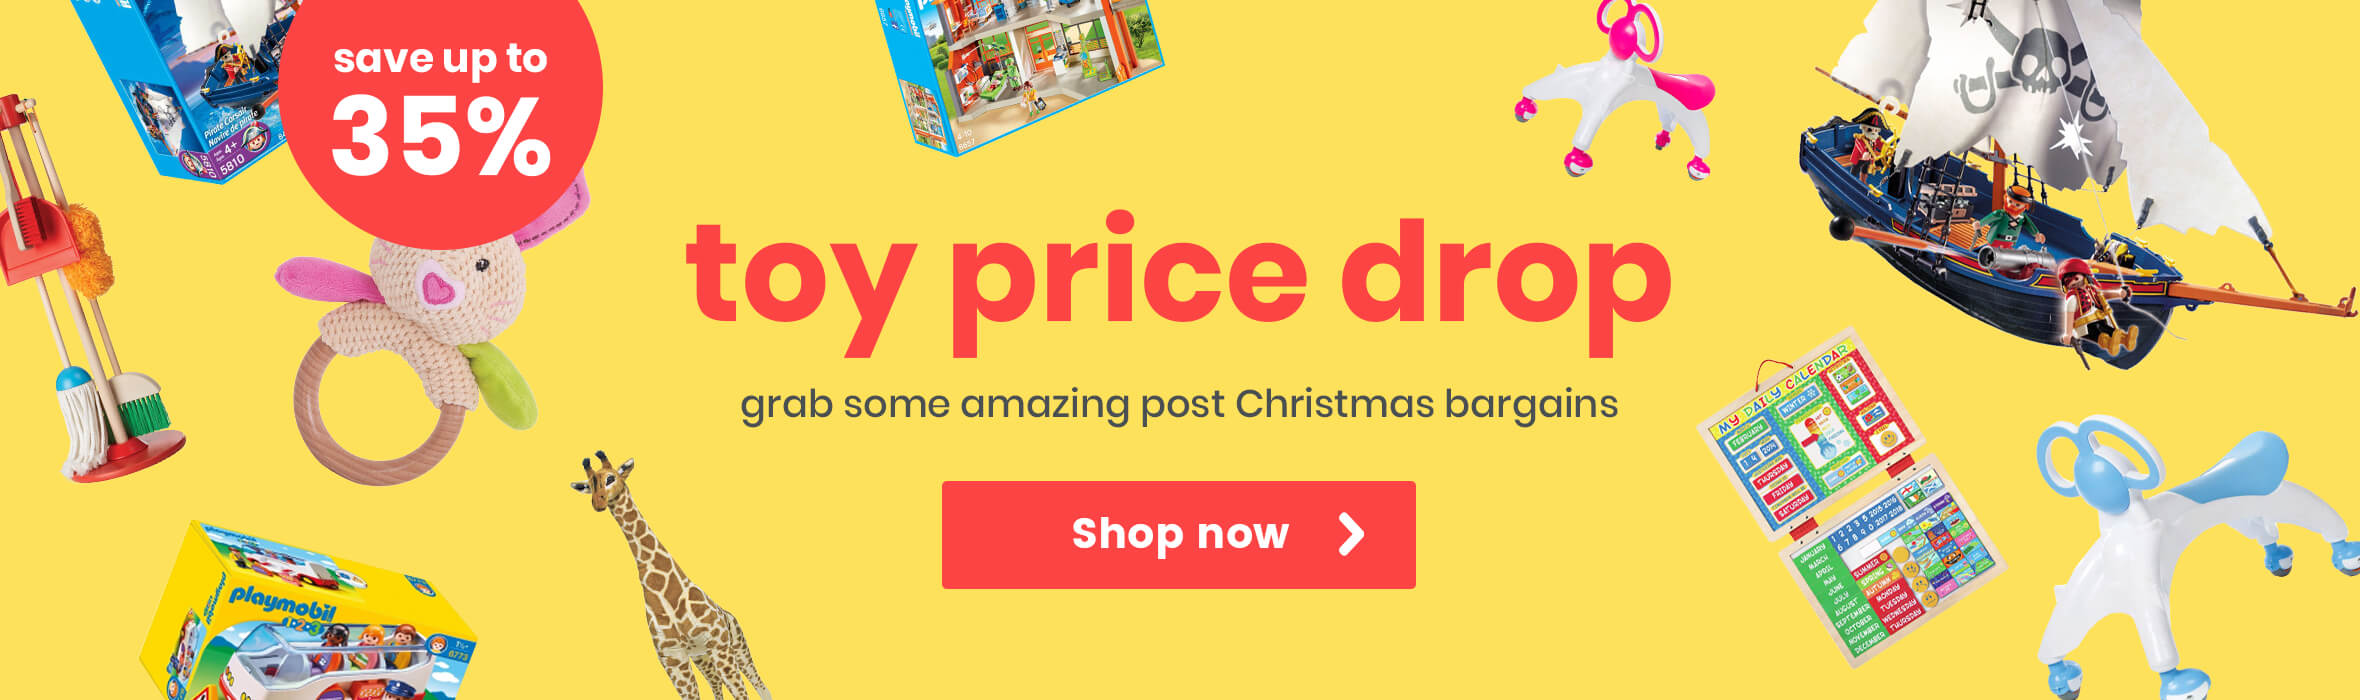 Toy Price Drop - Grab Some Amazing Post Christmas Bargains